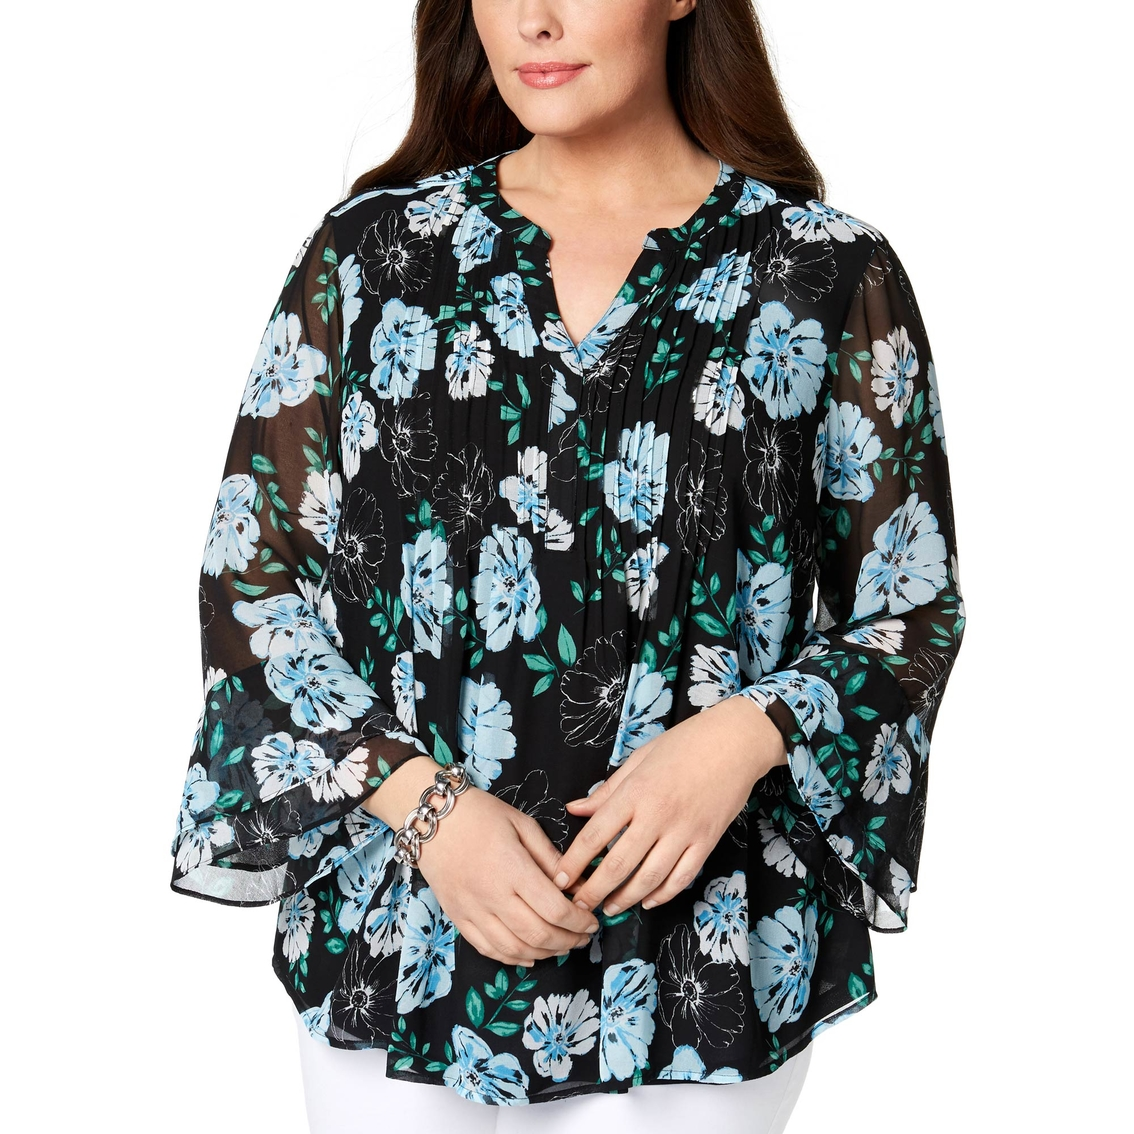 829d8a73aedb1 Plus Size Bell Sleeve Blouses - Joe Maloy